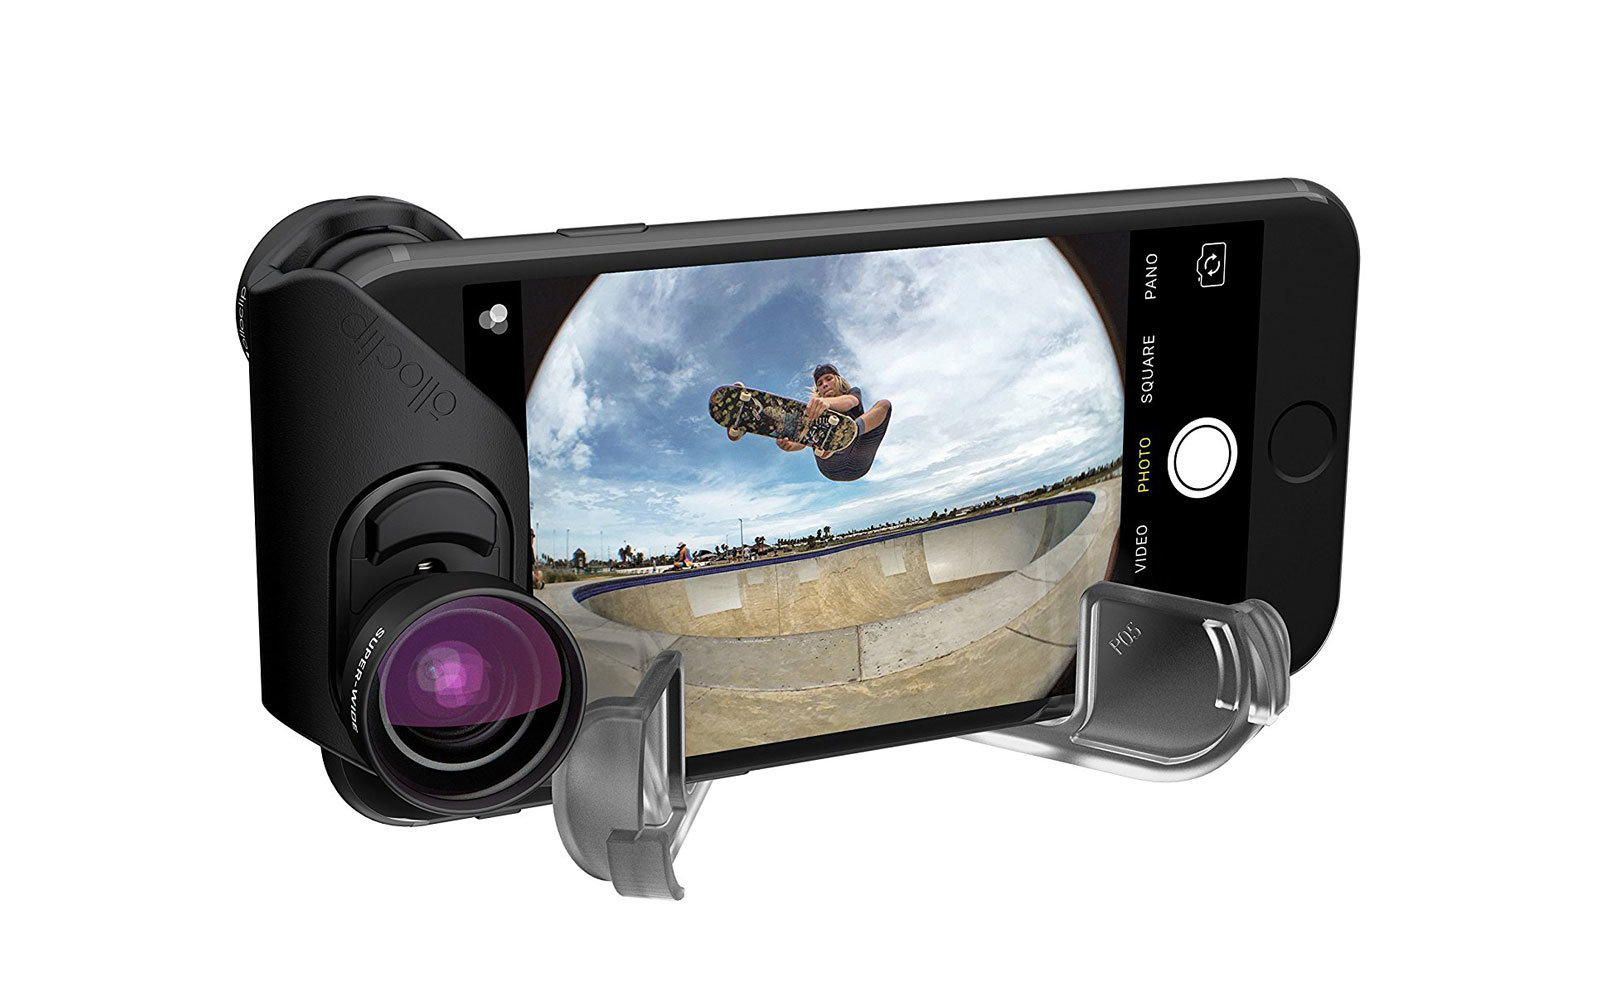 Ollo Clip 4in1 Photo Lens for iPhone 6 6s